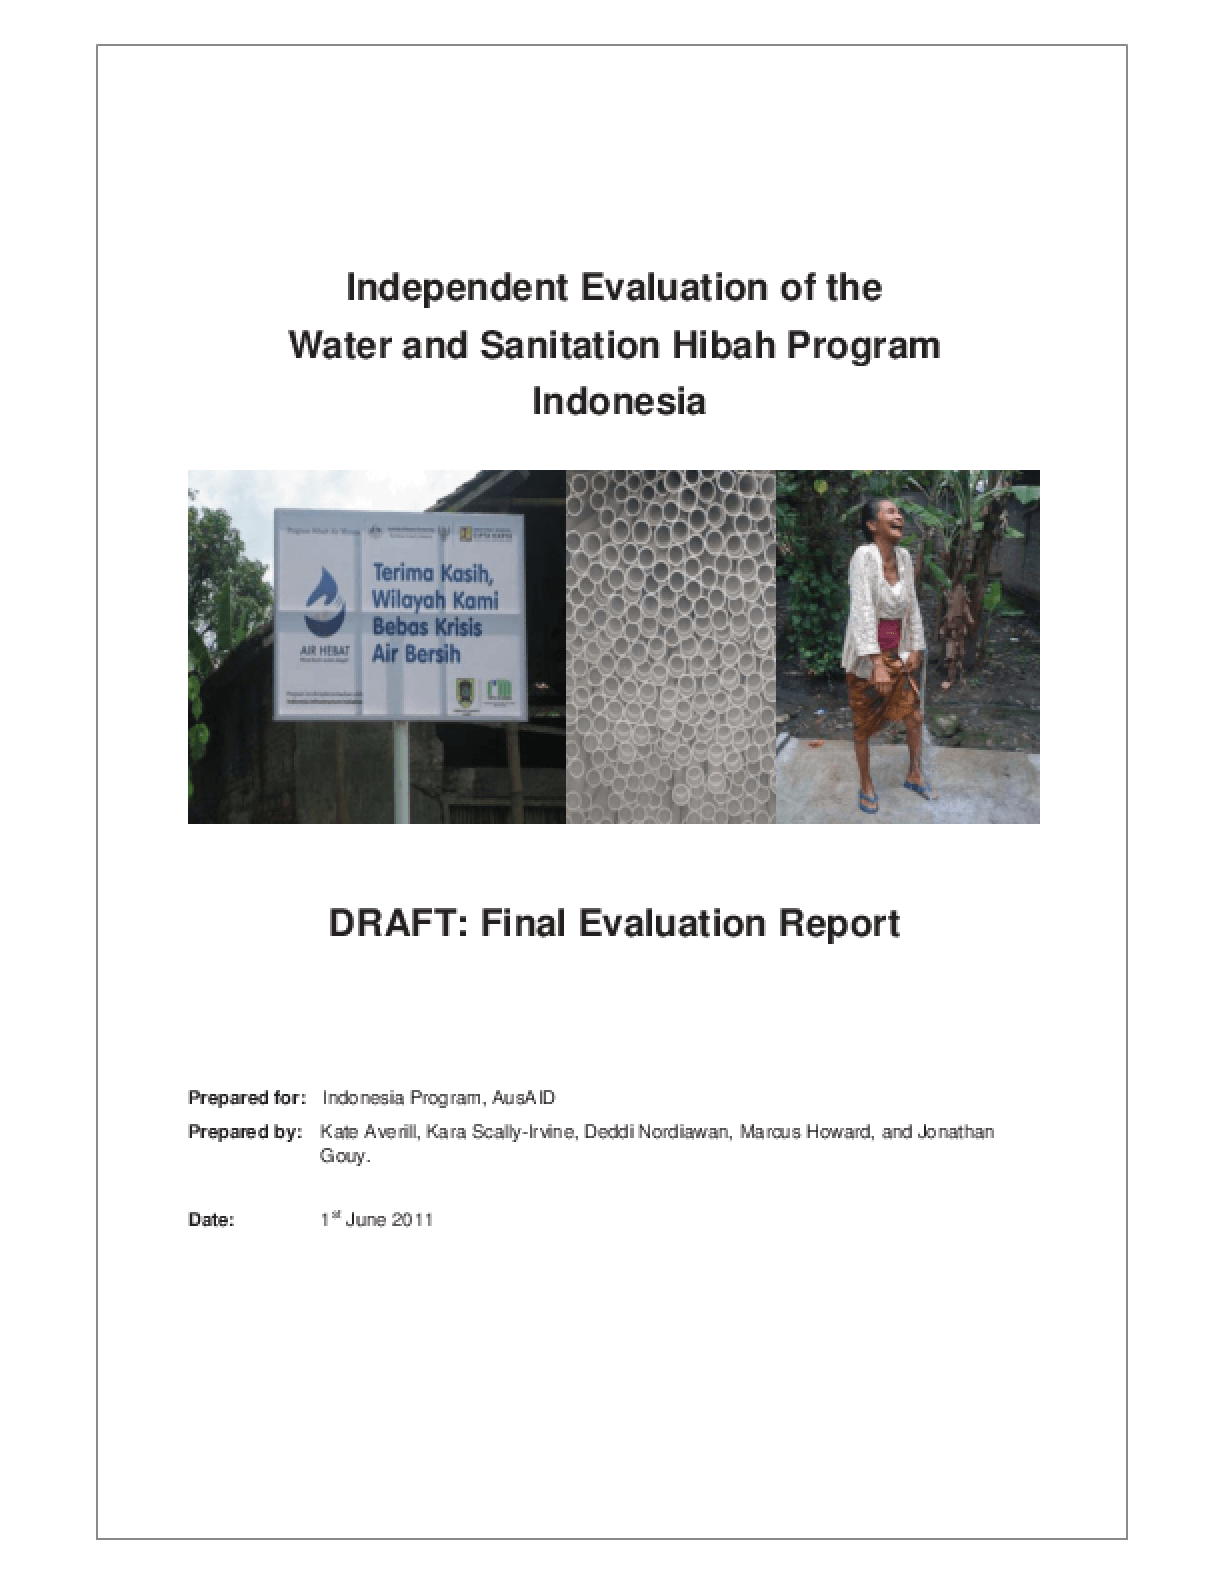 Independent Evaluation of the Water and Sanitation Hibah Program Indonesia